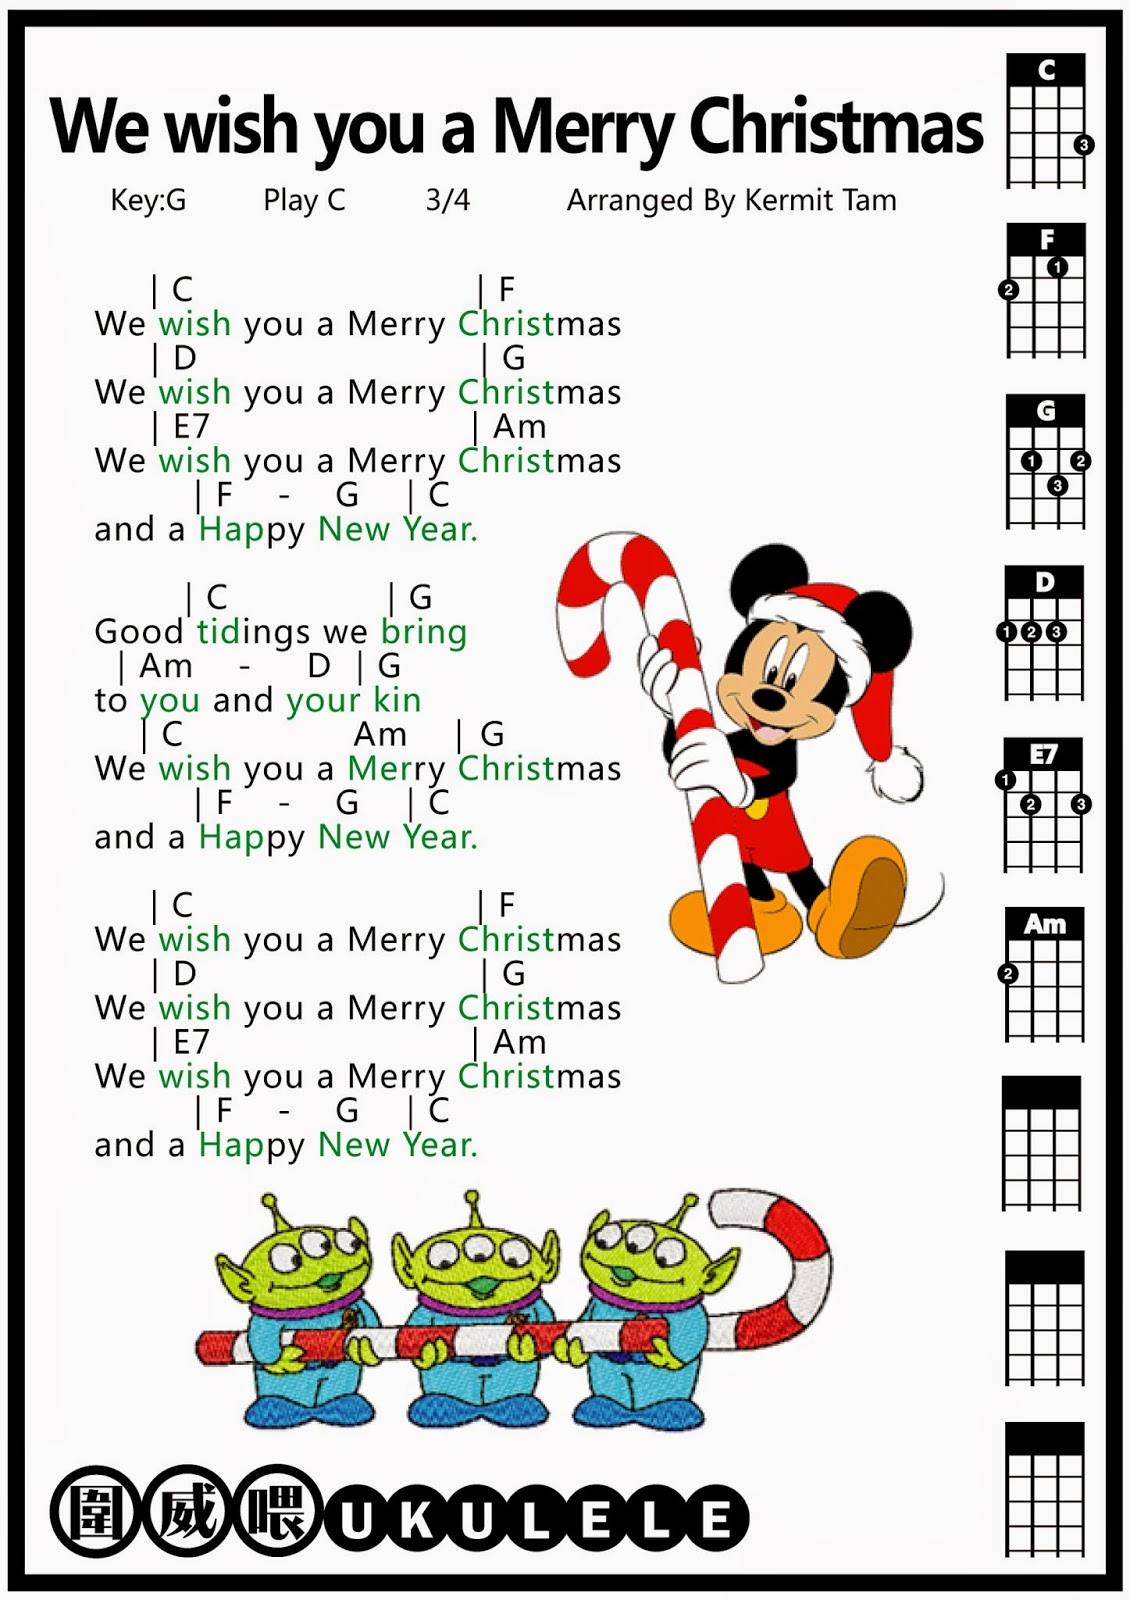 圍威喂ukulele: We wish you a Merry Christmas [ukulele tab]